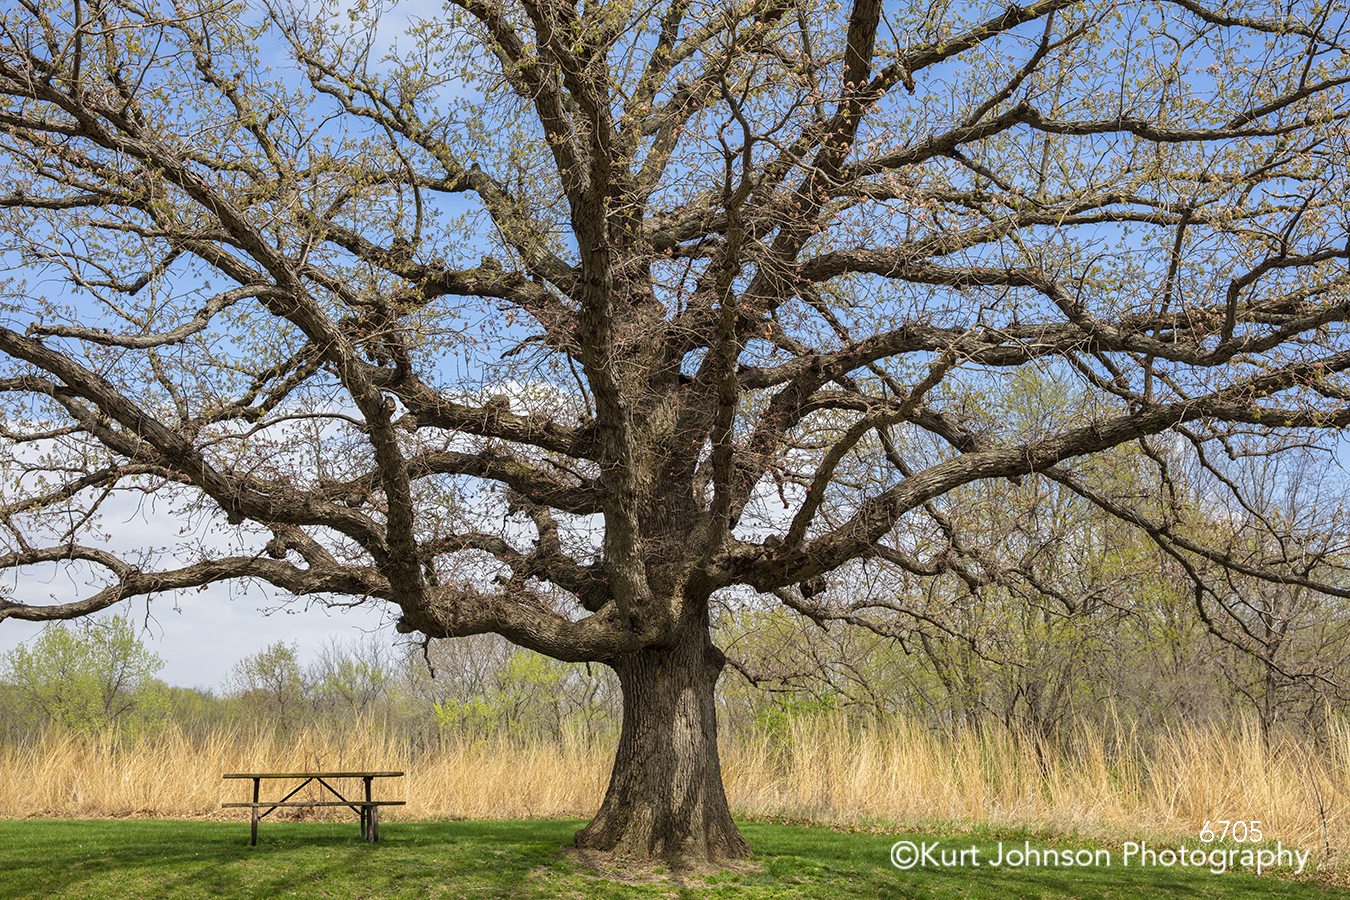 large tree branches bench trees landscape blue sky green grass clouds